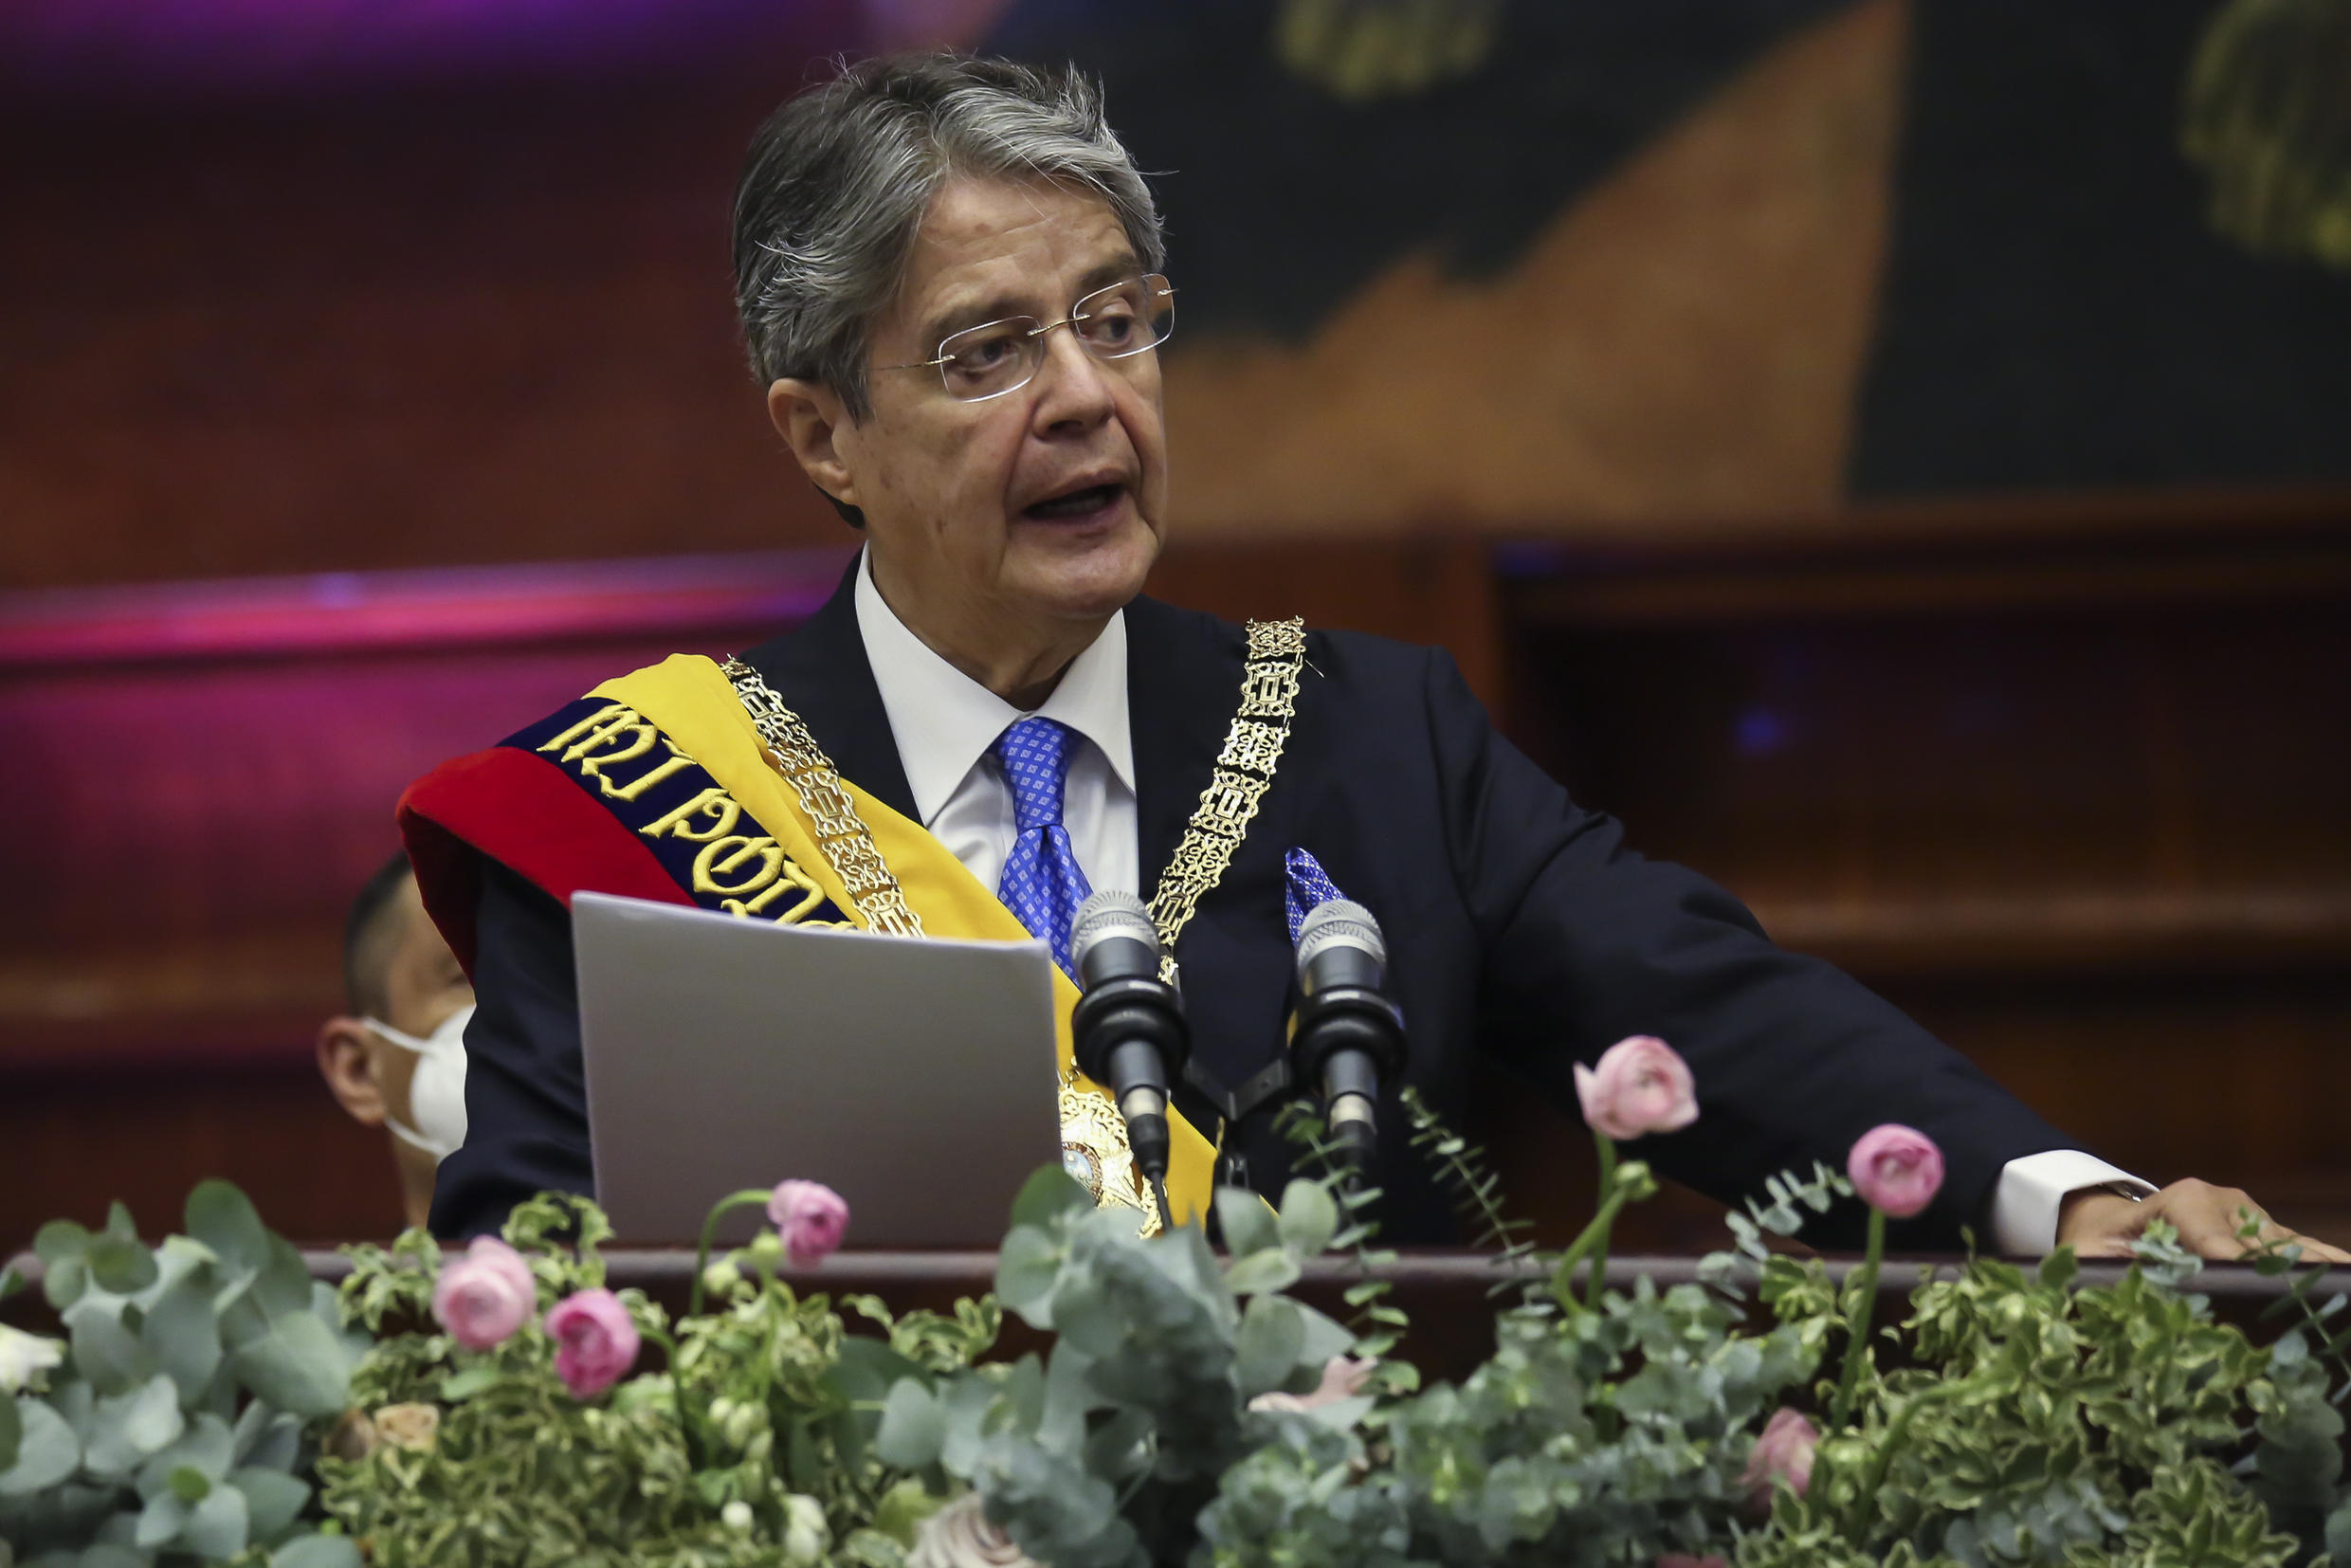 Ecuador's newly sworn-in President Guillermo Lasso deliver's a speech during his inauguration at the National Assembly in Quito